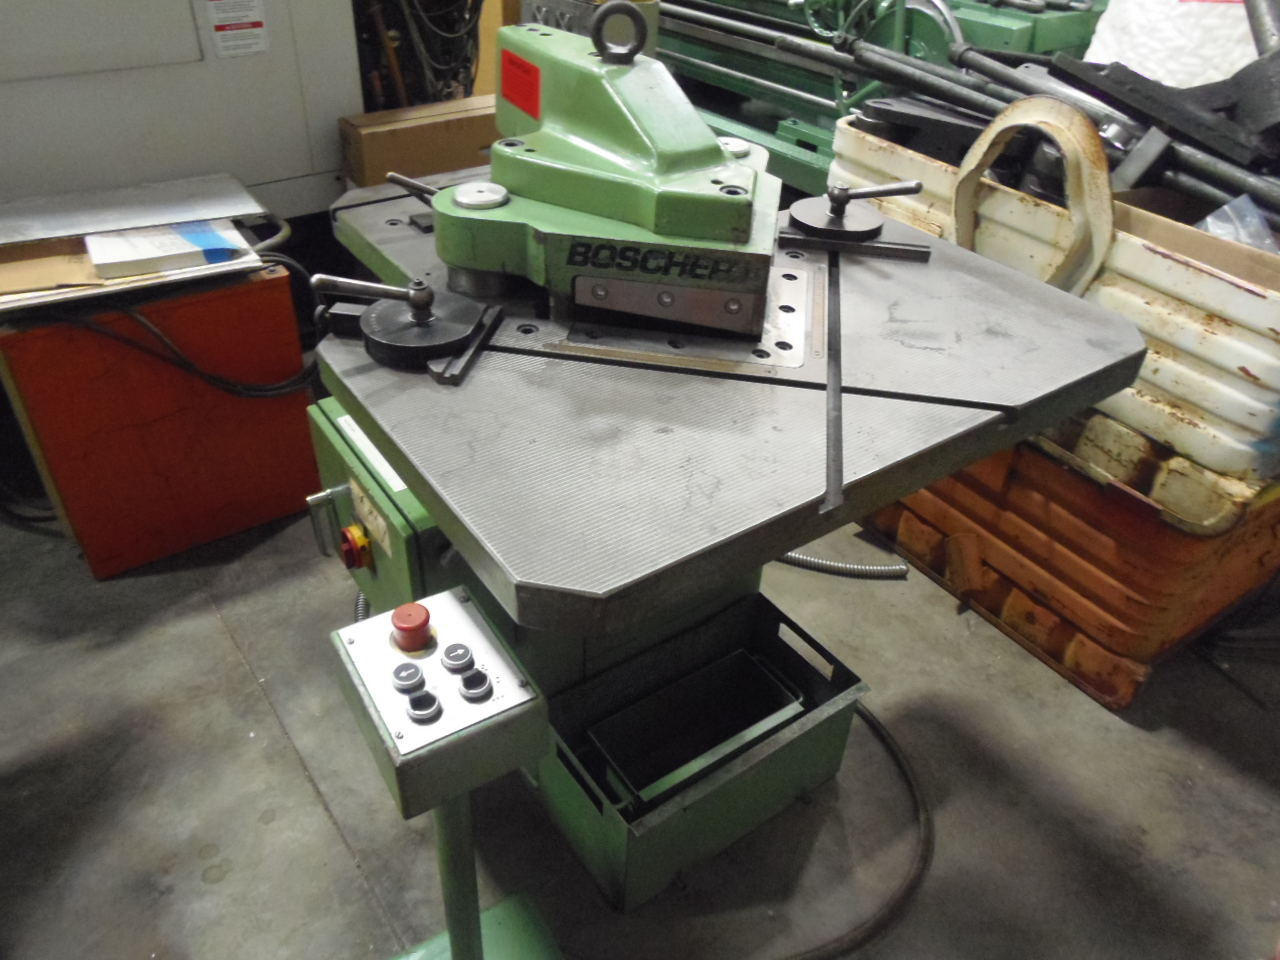 ".156 X 8.875"" X 8.875"" BOSCHERT NOTCHER, MODEL LB14, HYDRAULIC, COPING ATTACHMENT, 1996"